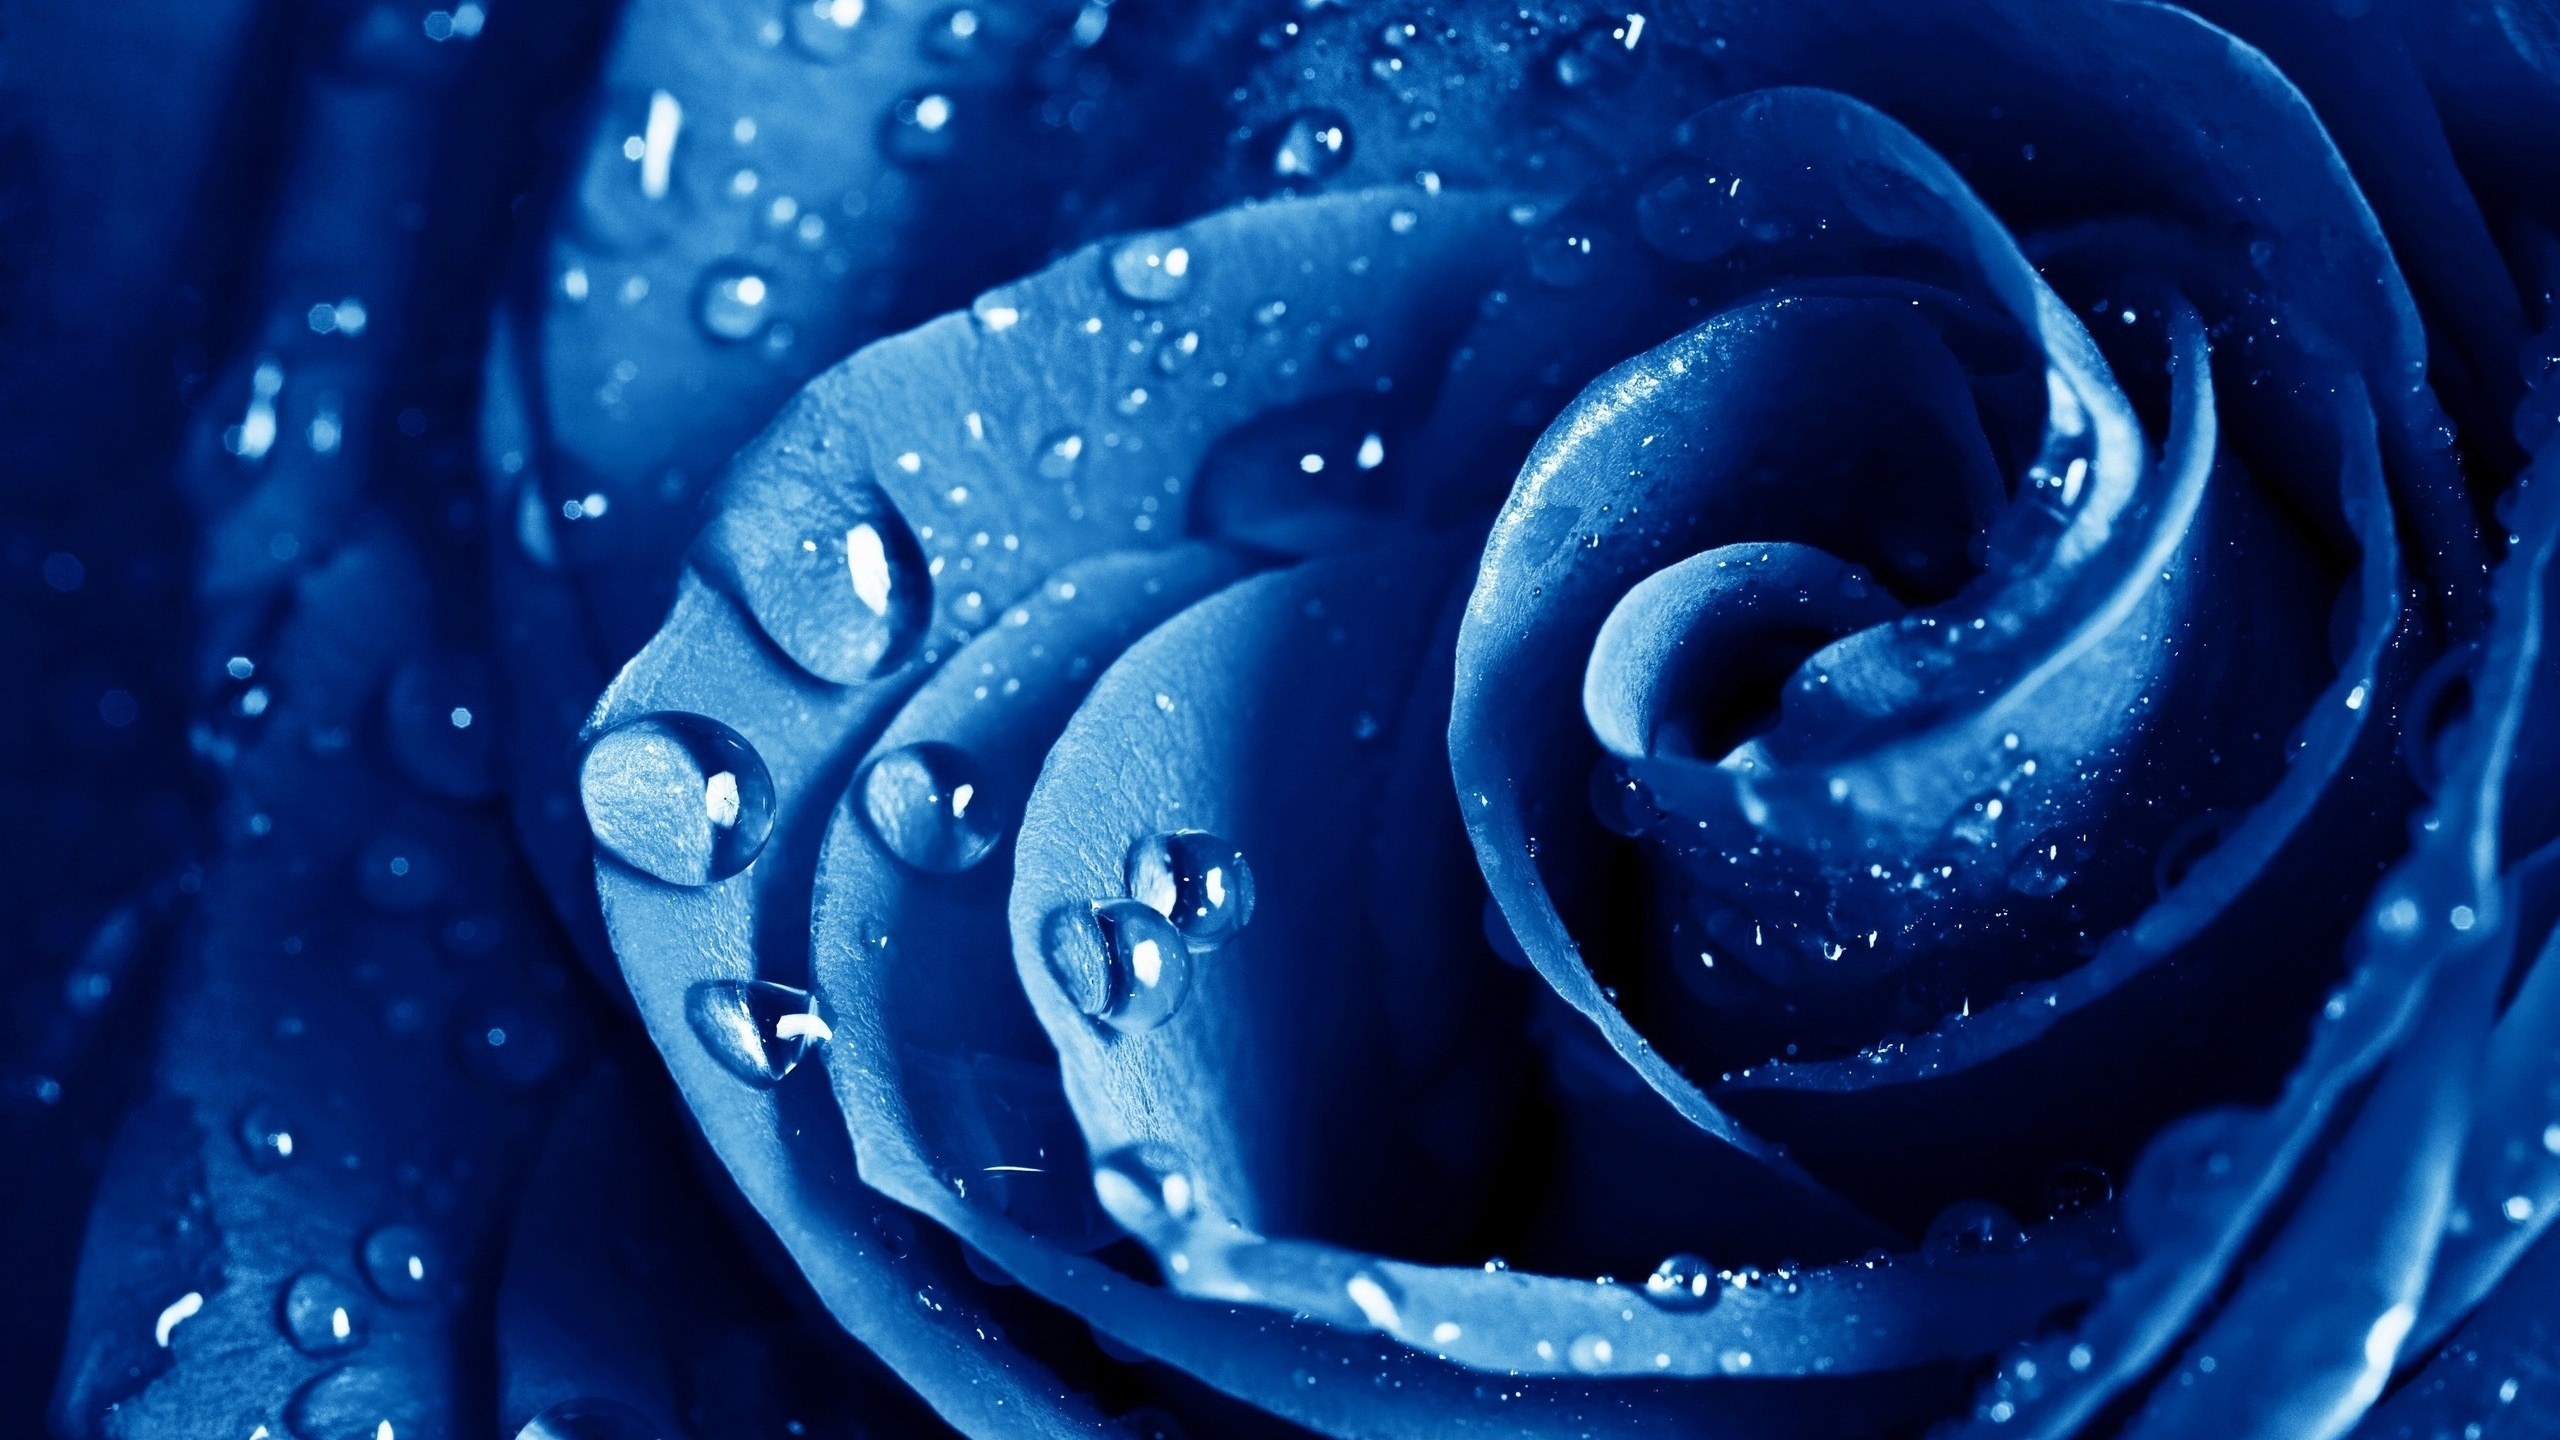 wet drops blue rose wallpapers in jpg format for free download